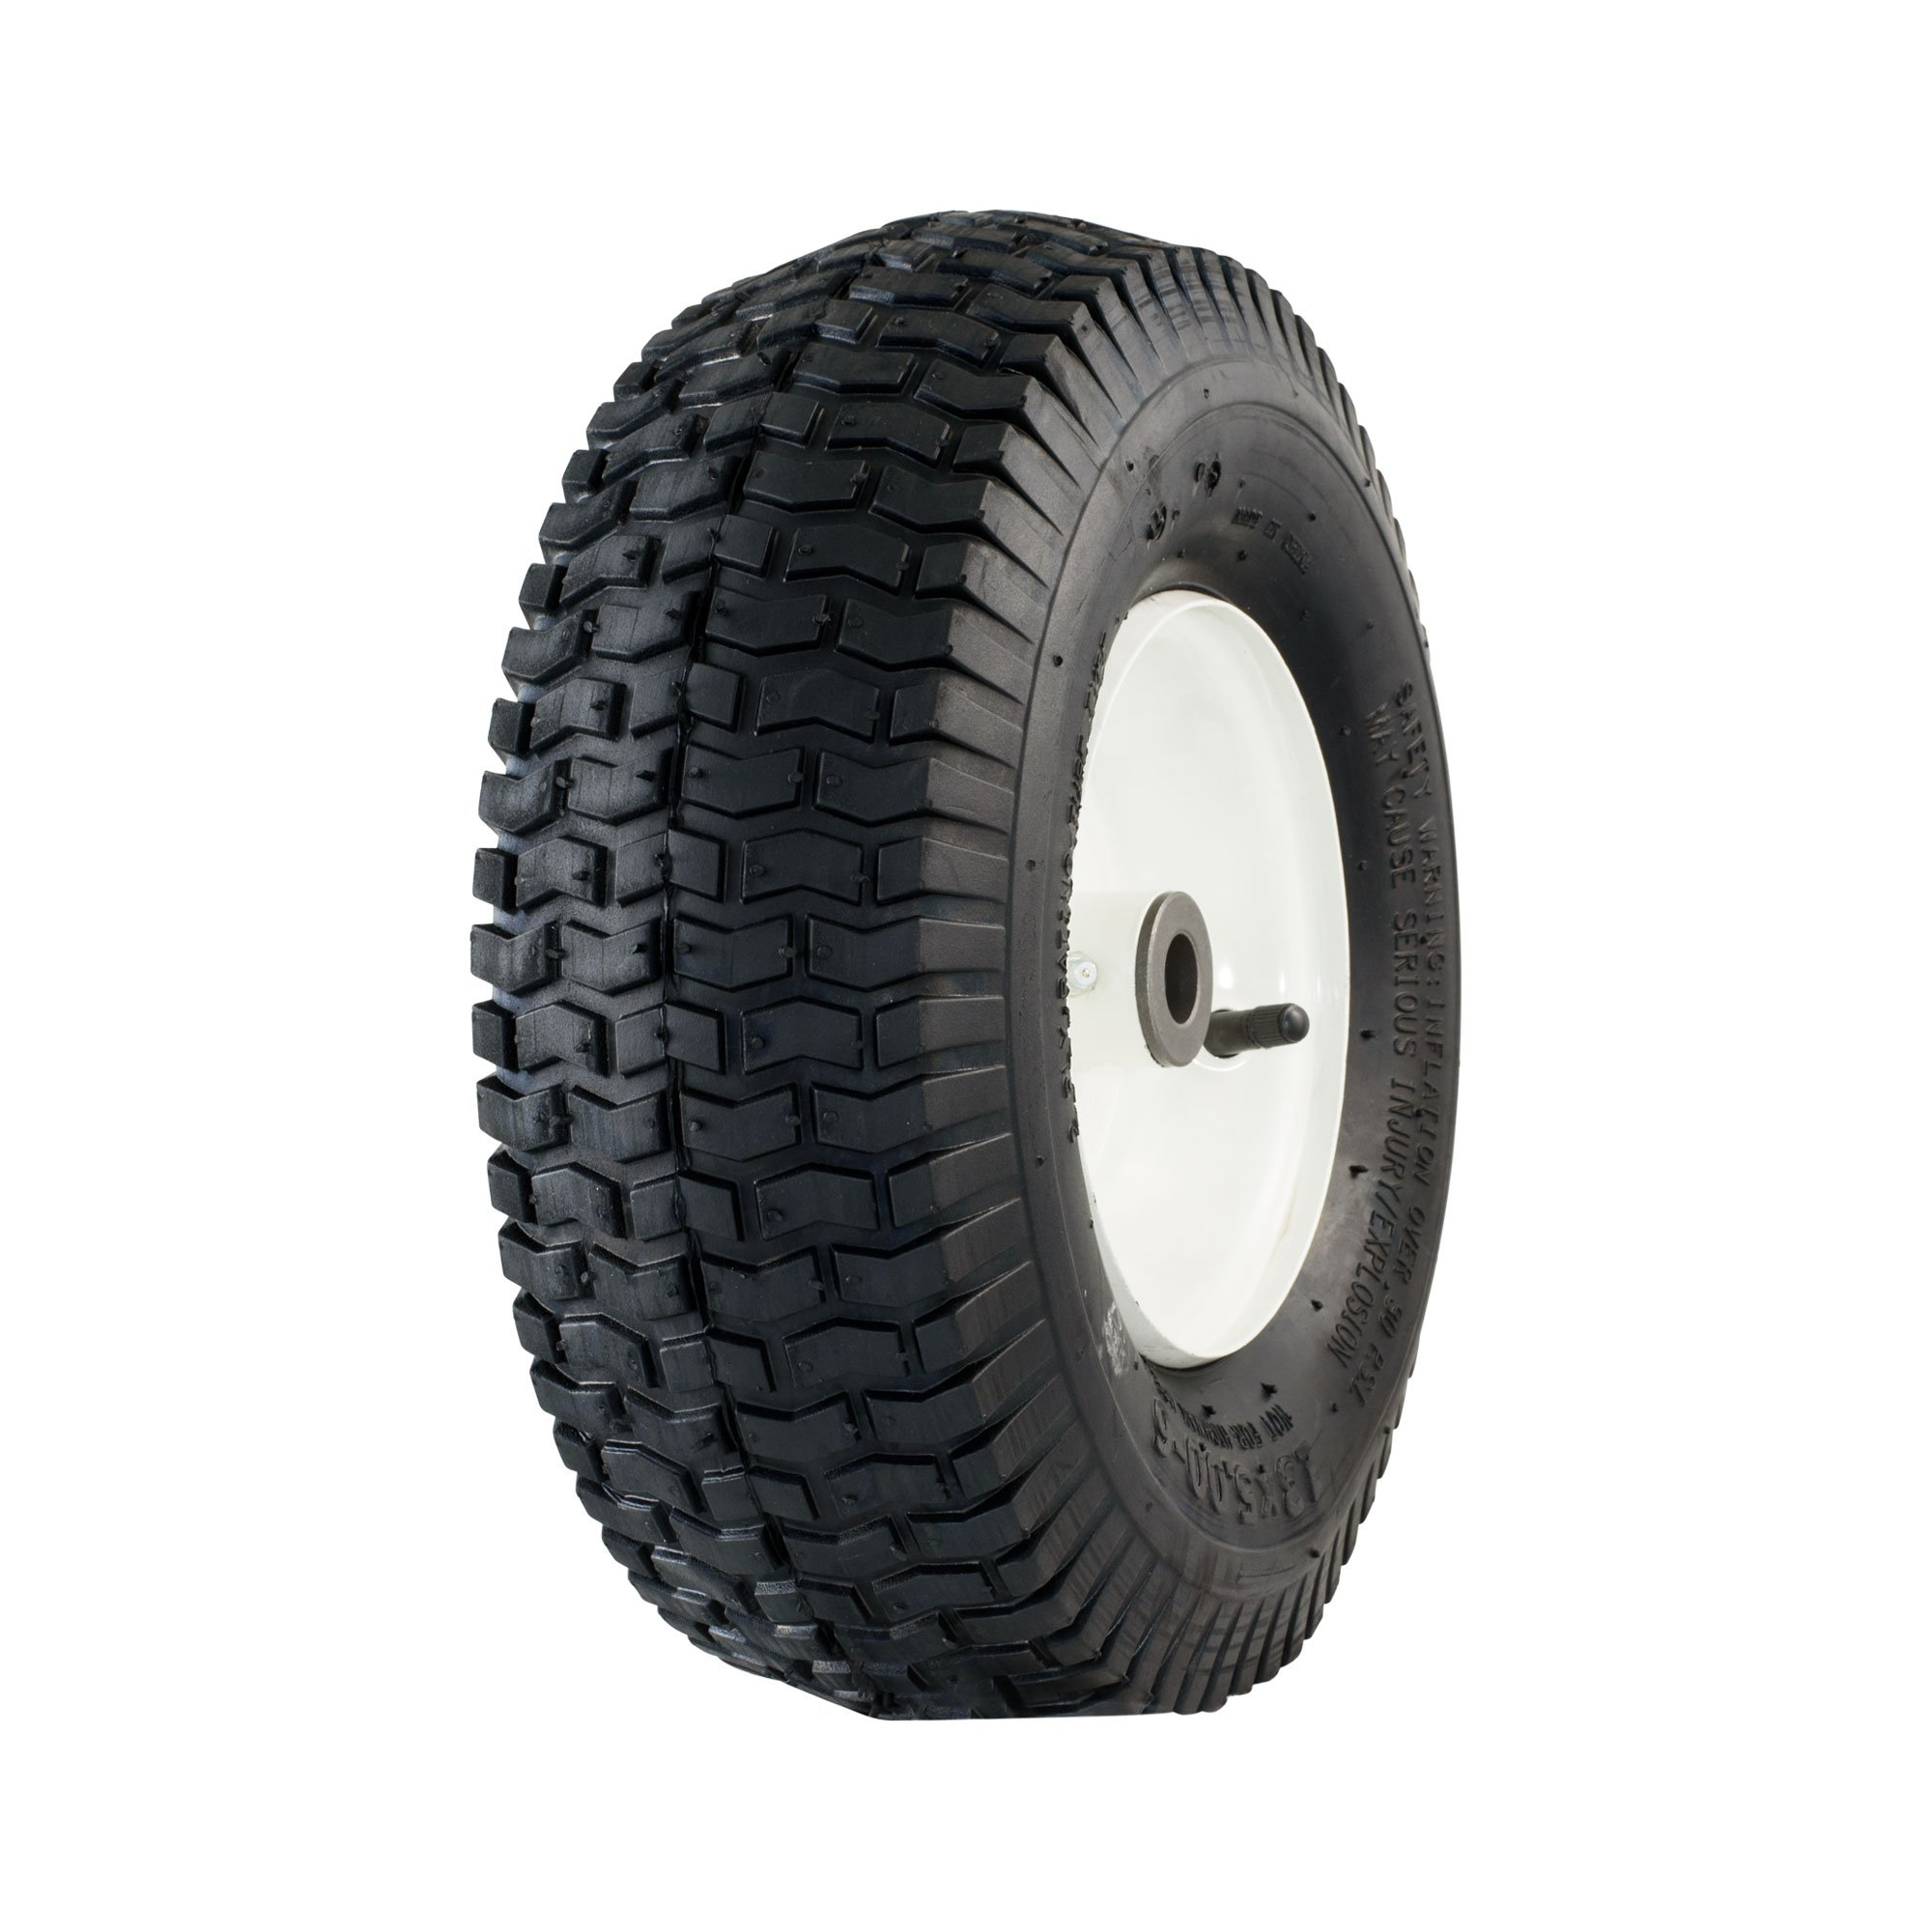 Marathon 13x5.00-6'' Pneumatic (Air Filled) Tire on Wheel, 3'' Hub, 3/4 Bushings by Marathon Industries (Image #1)